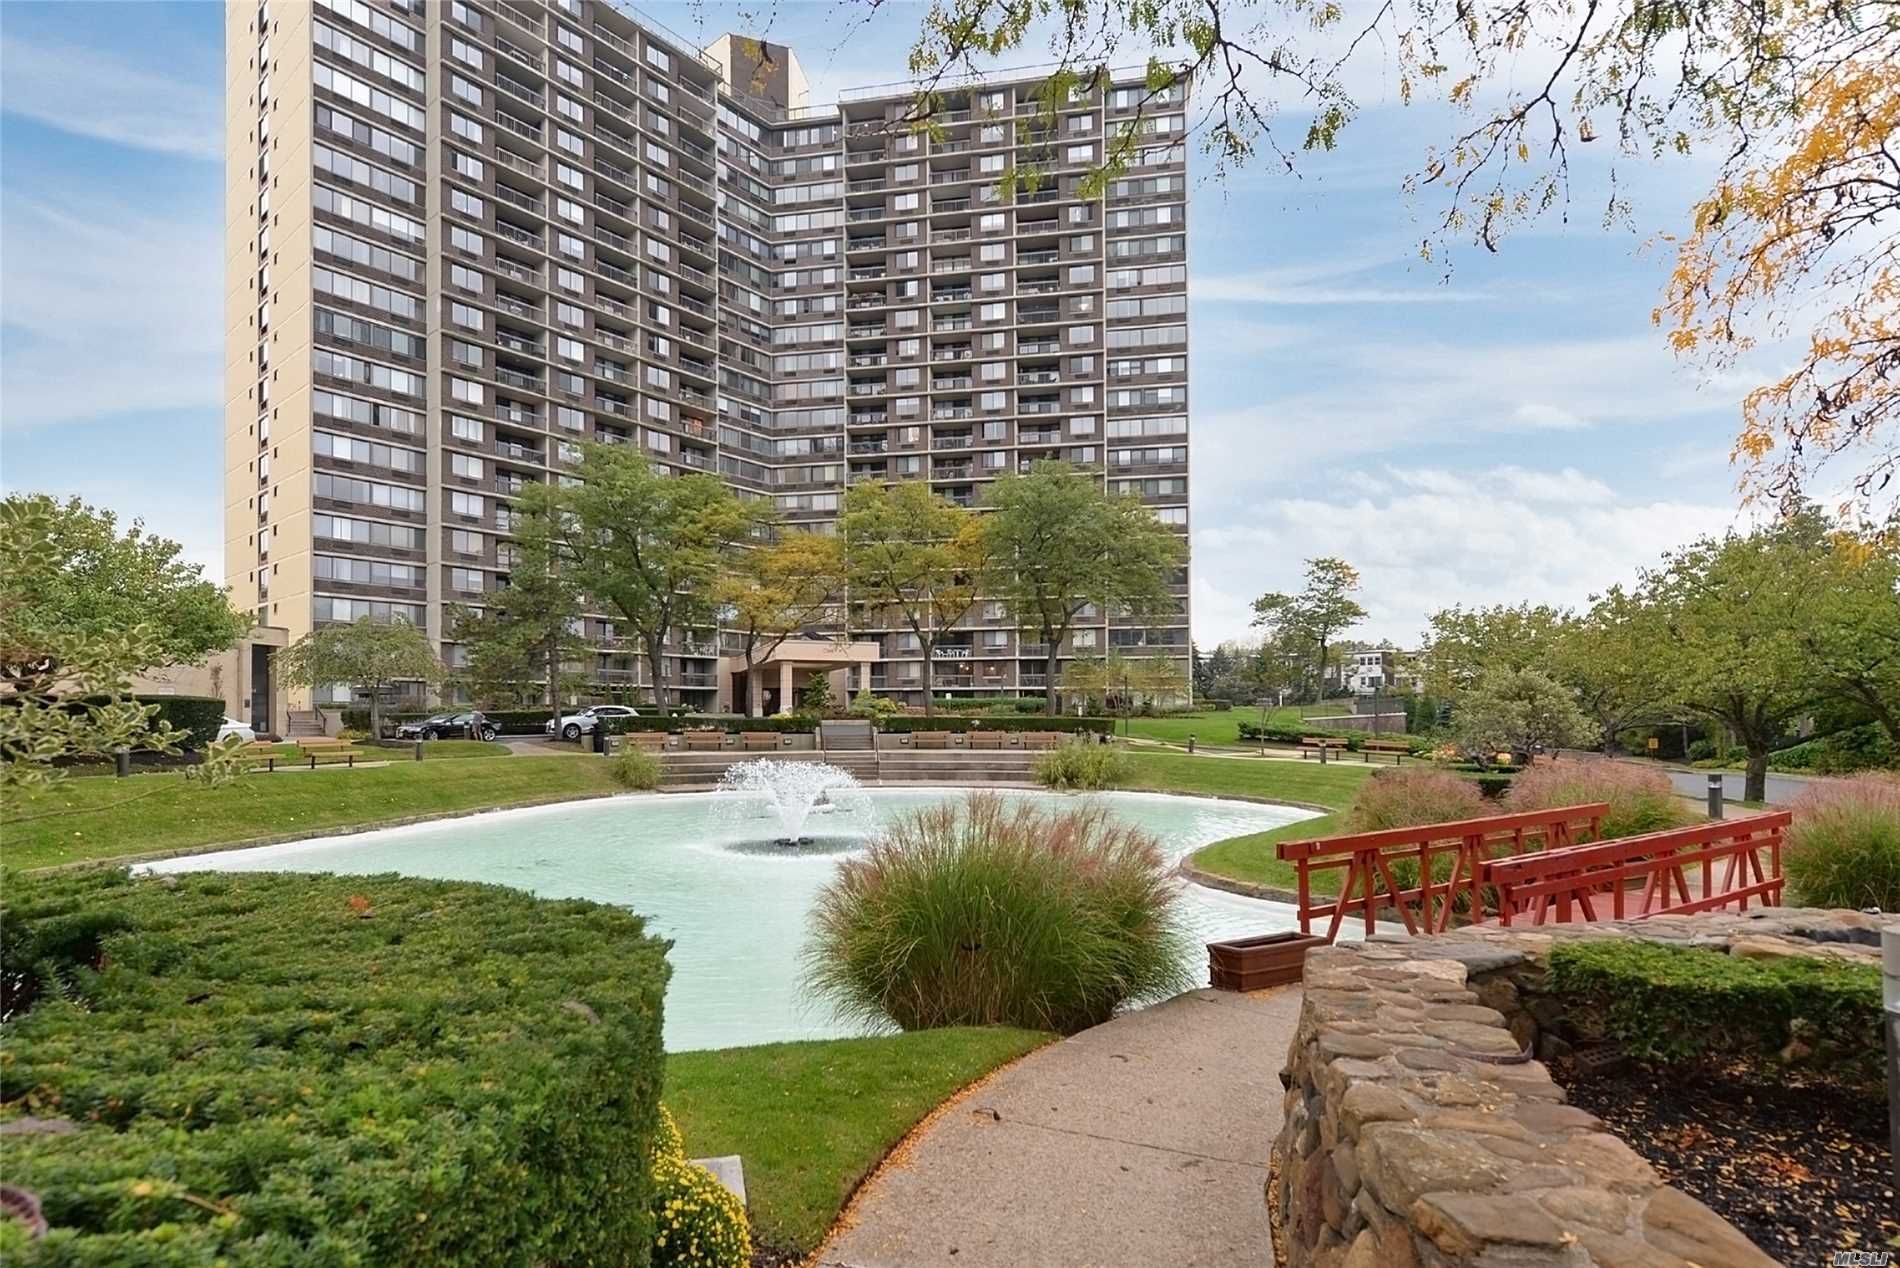 Fabulous Bay Club Gated Community. Security. 24 Hr. Doorman / Concierge. Beautiful Renovated Large 1 Bedroom Unit. Year Round Swim & Fitness Center, Indoor Parking (Extra Fees). Free Tennis Club. New Children's Playground. New On Premises Restaurant. Underground Stores.Best Location. Near Everything.